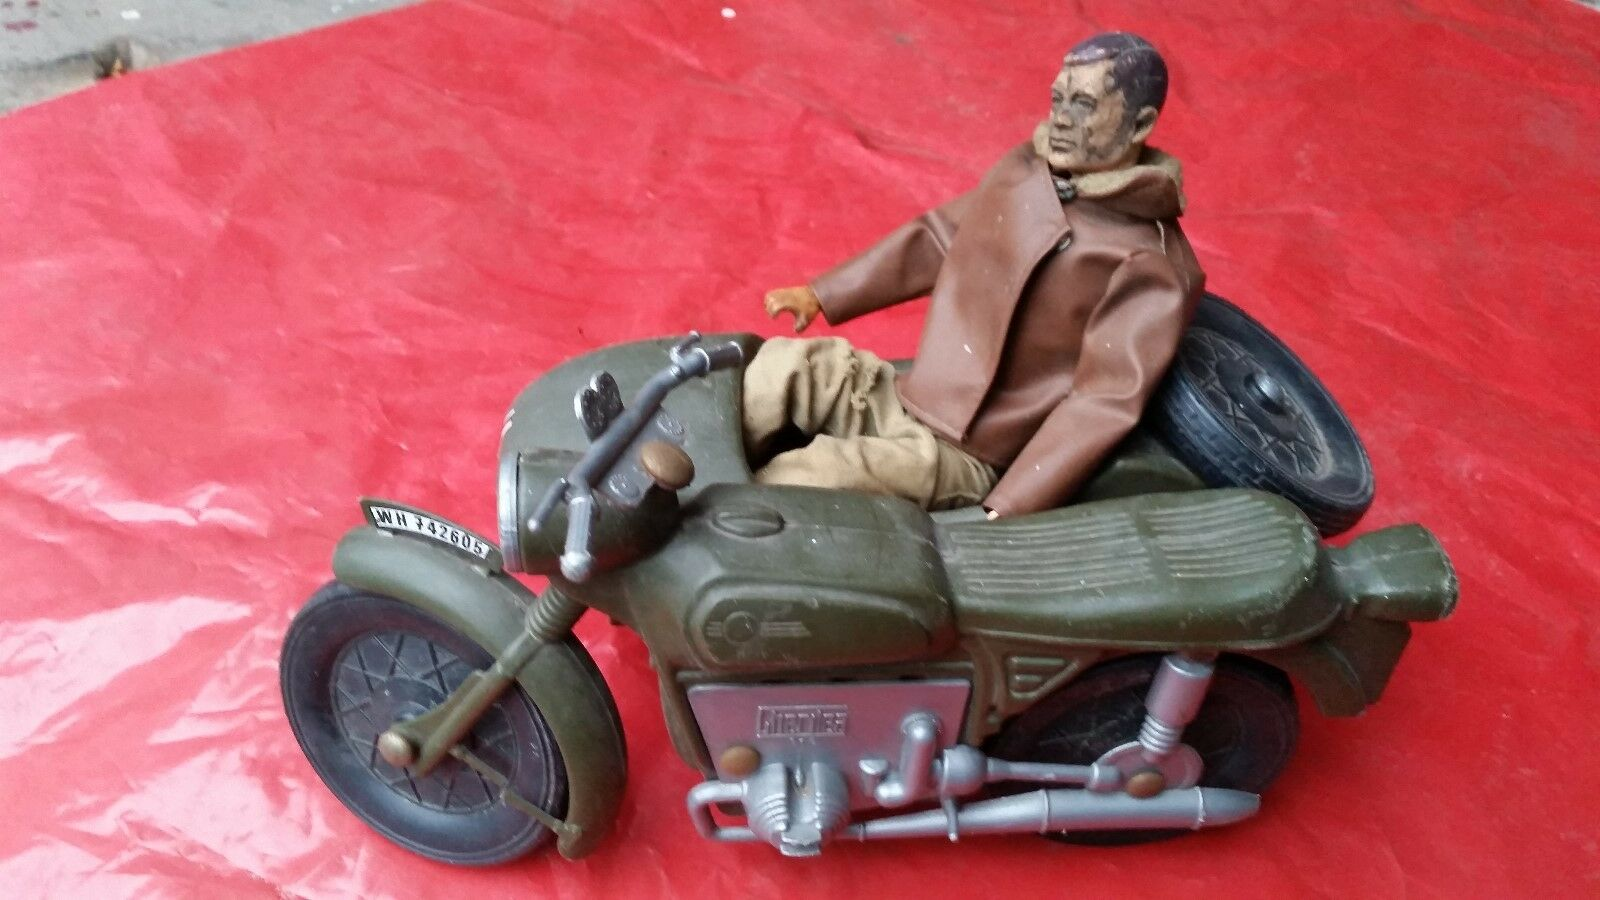 VINTAGE ACTION MAN NAZI WW2 GERMAN MOTORCYCLE WITH SIDE CAR AND FIGURE CHERILEA